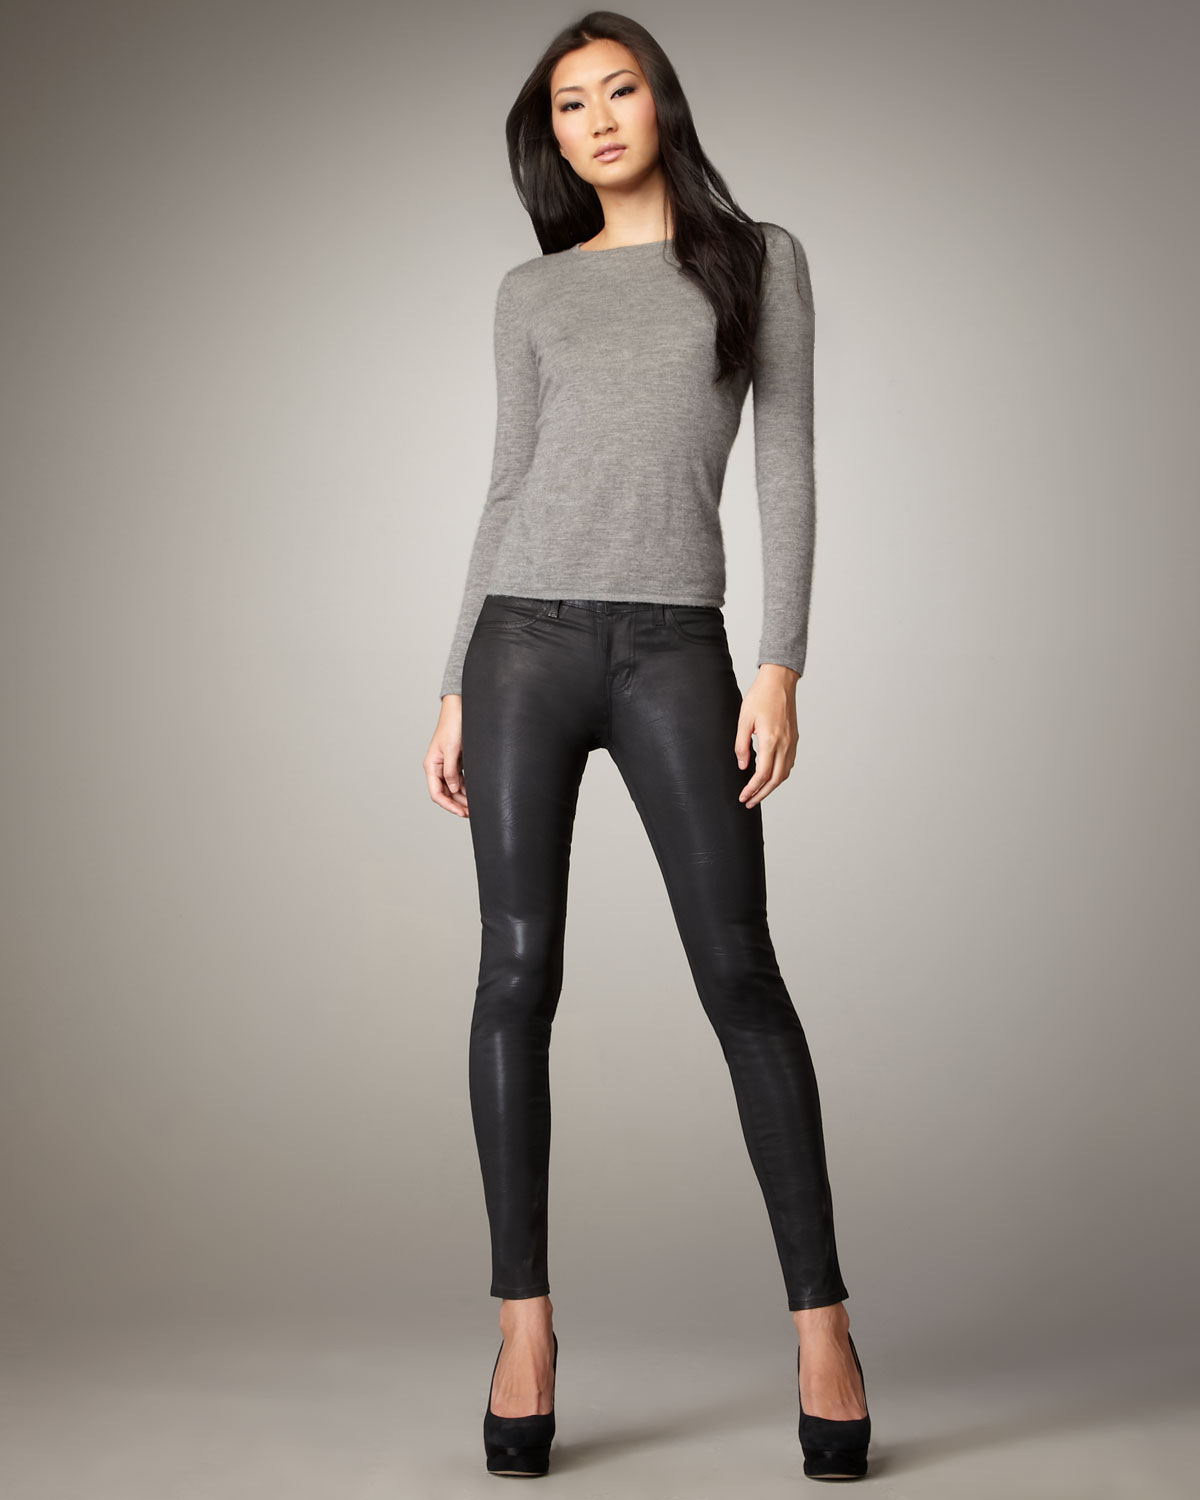 Lyst - J Brand Faux-leather Pants in Black